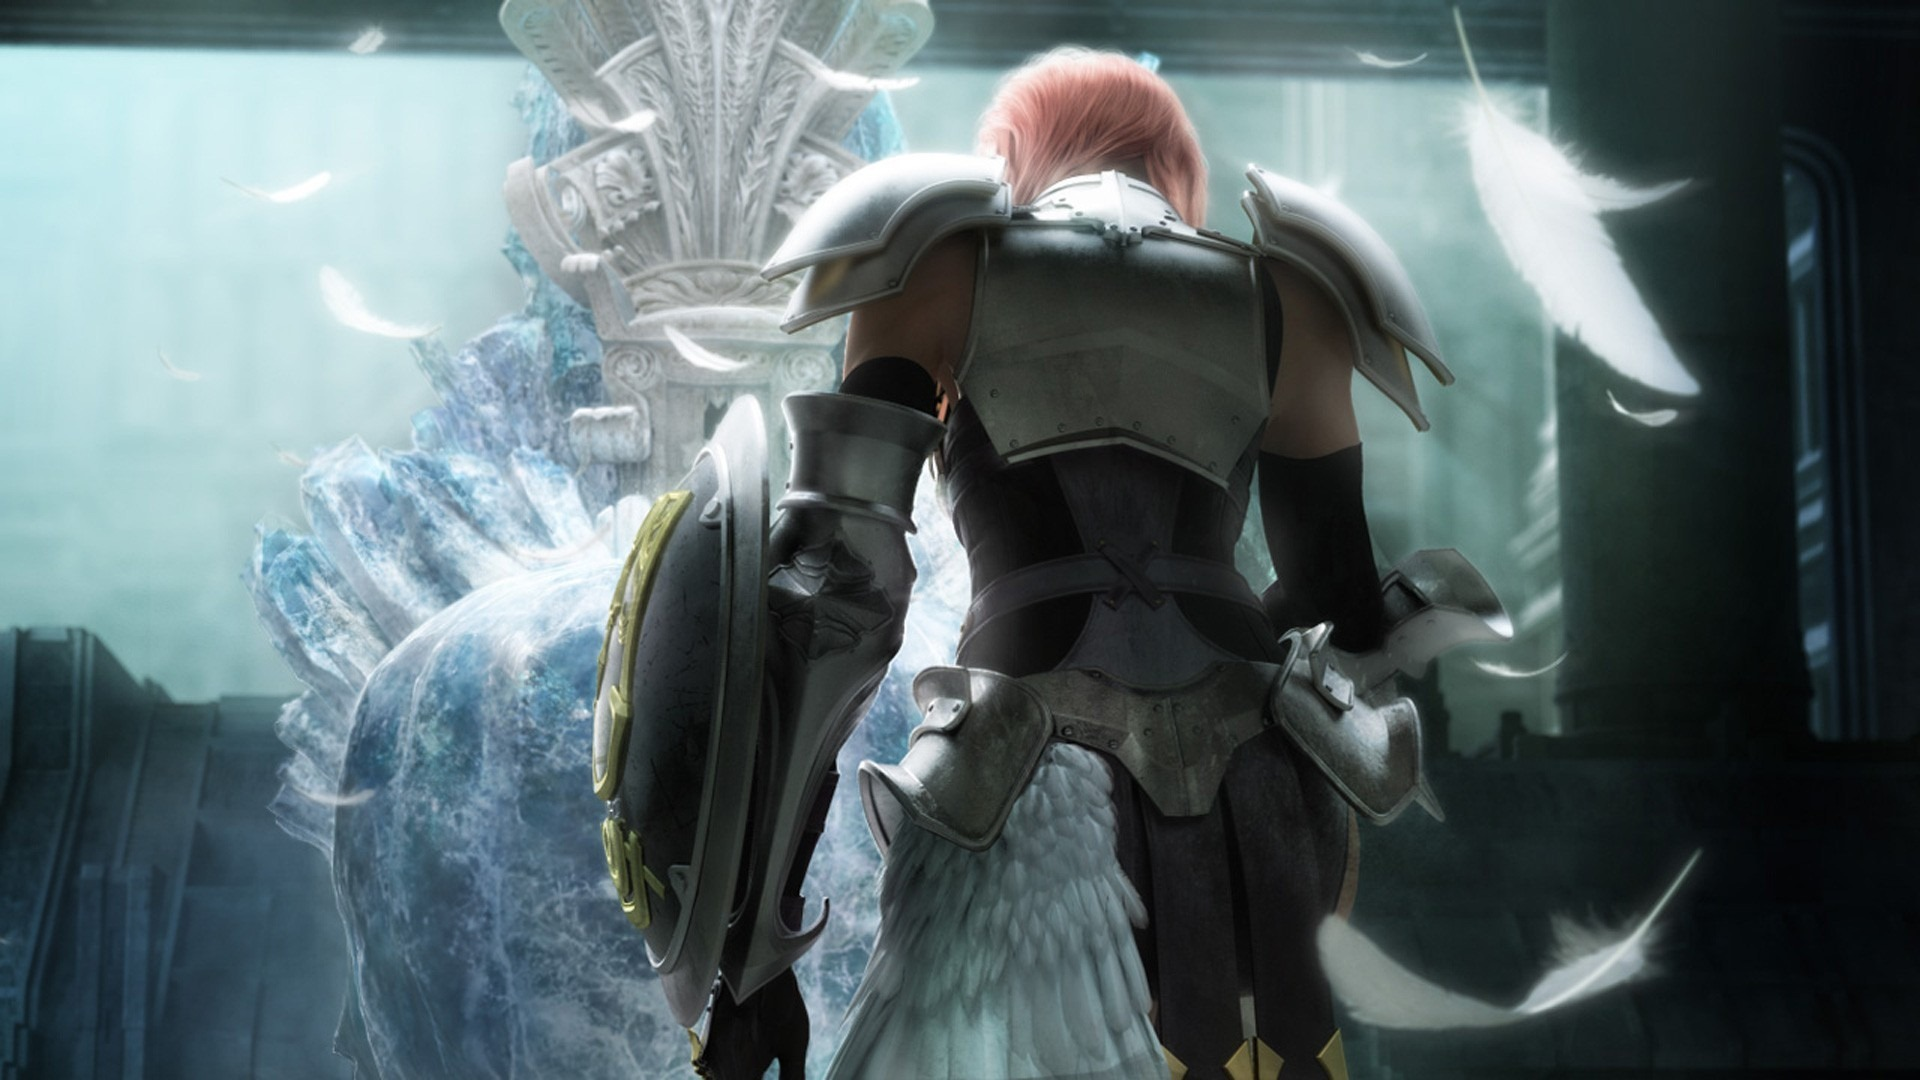 final fantasy xiii Claire HD Wallpaper